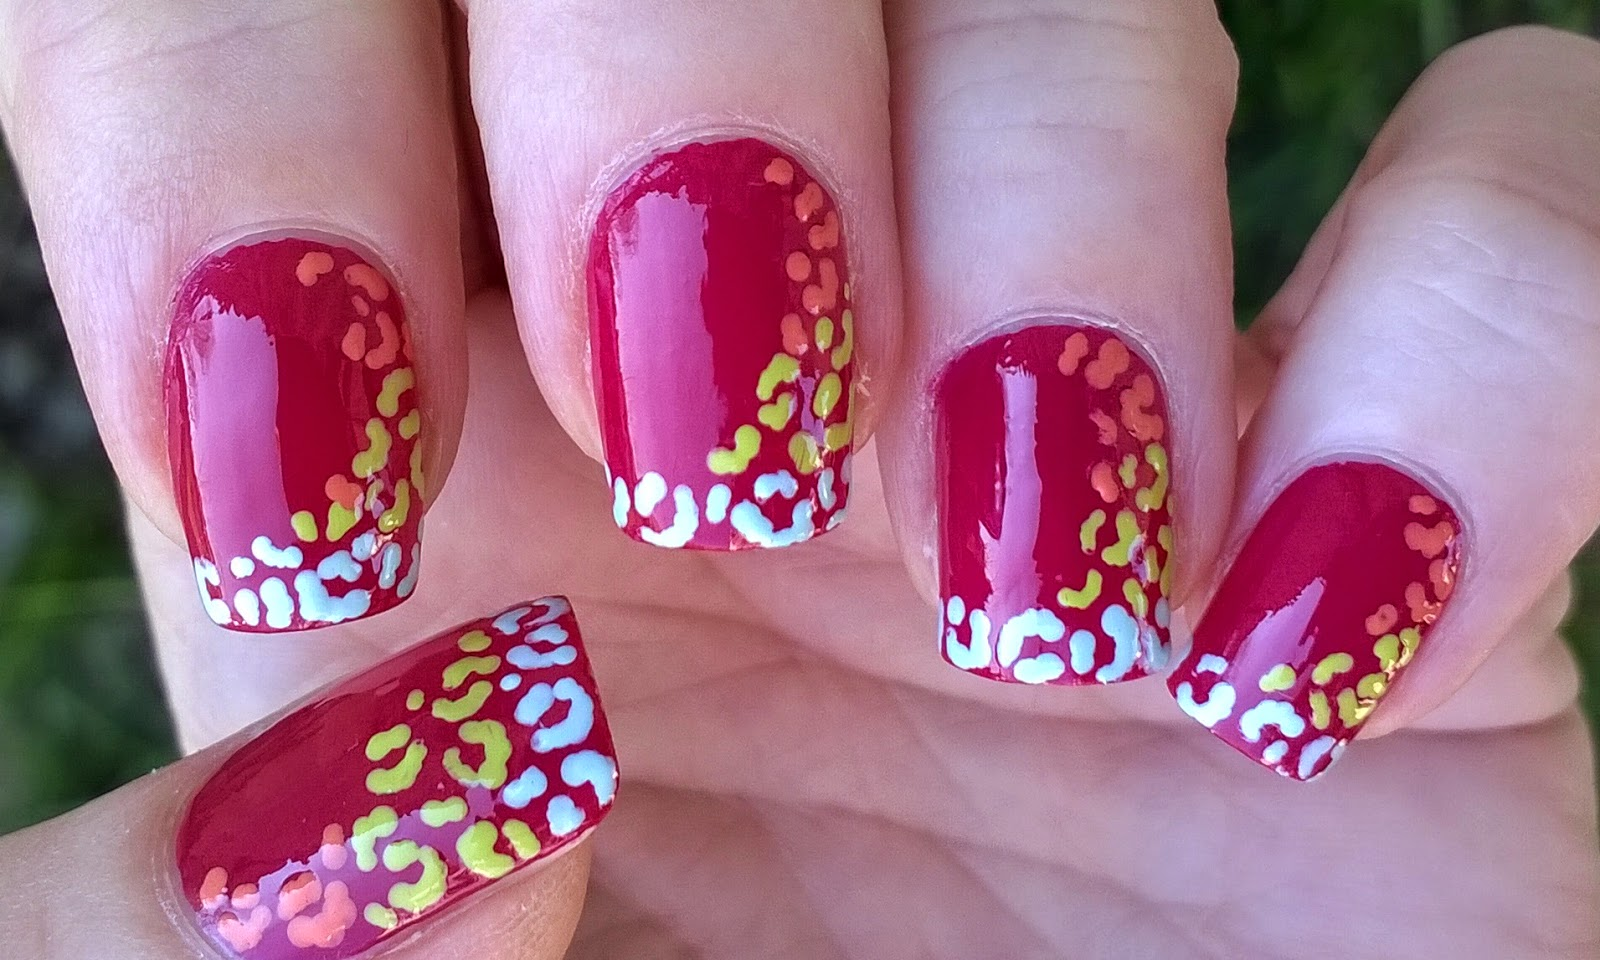 Life world women colorful leopard nails toothpick nail art colorful leopard nails toothpick nail art prinsesfo Gallery